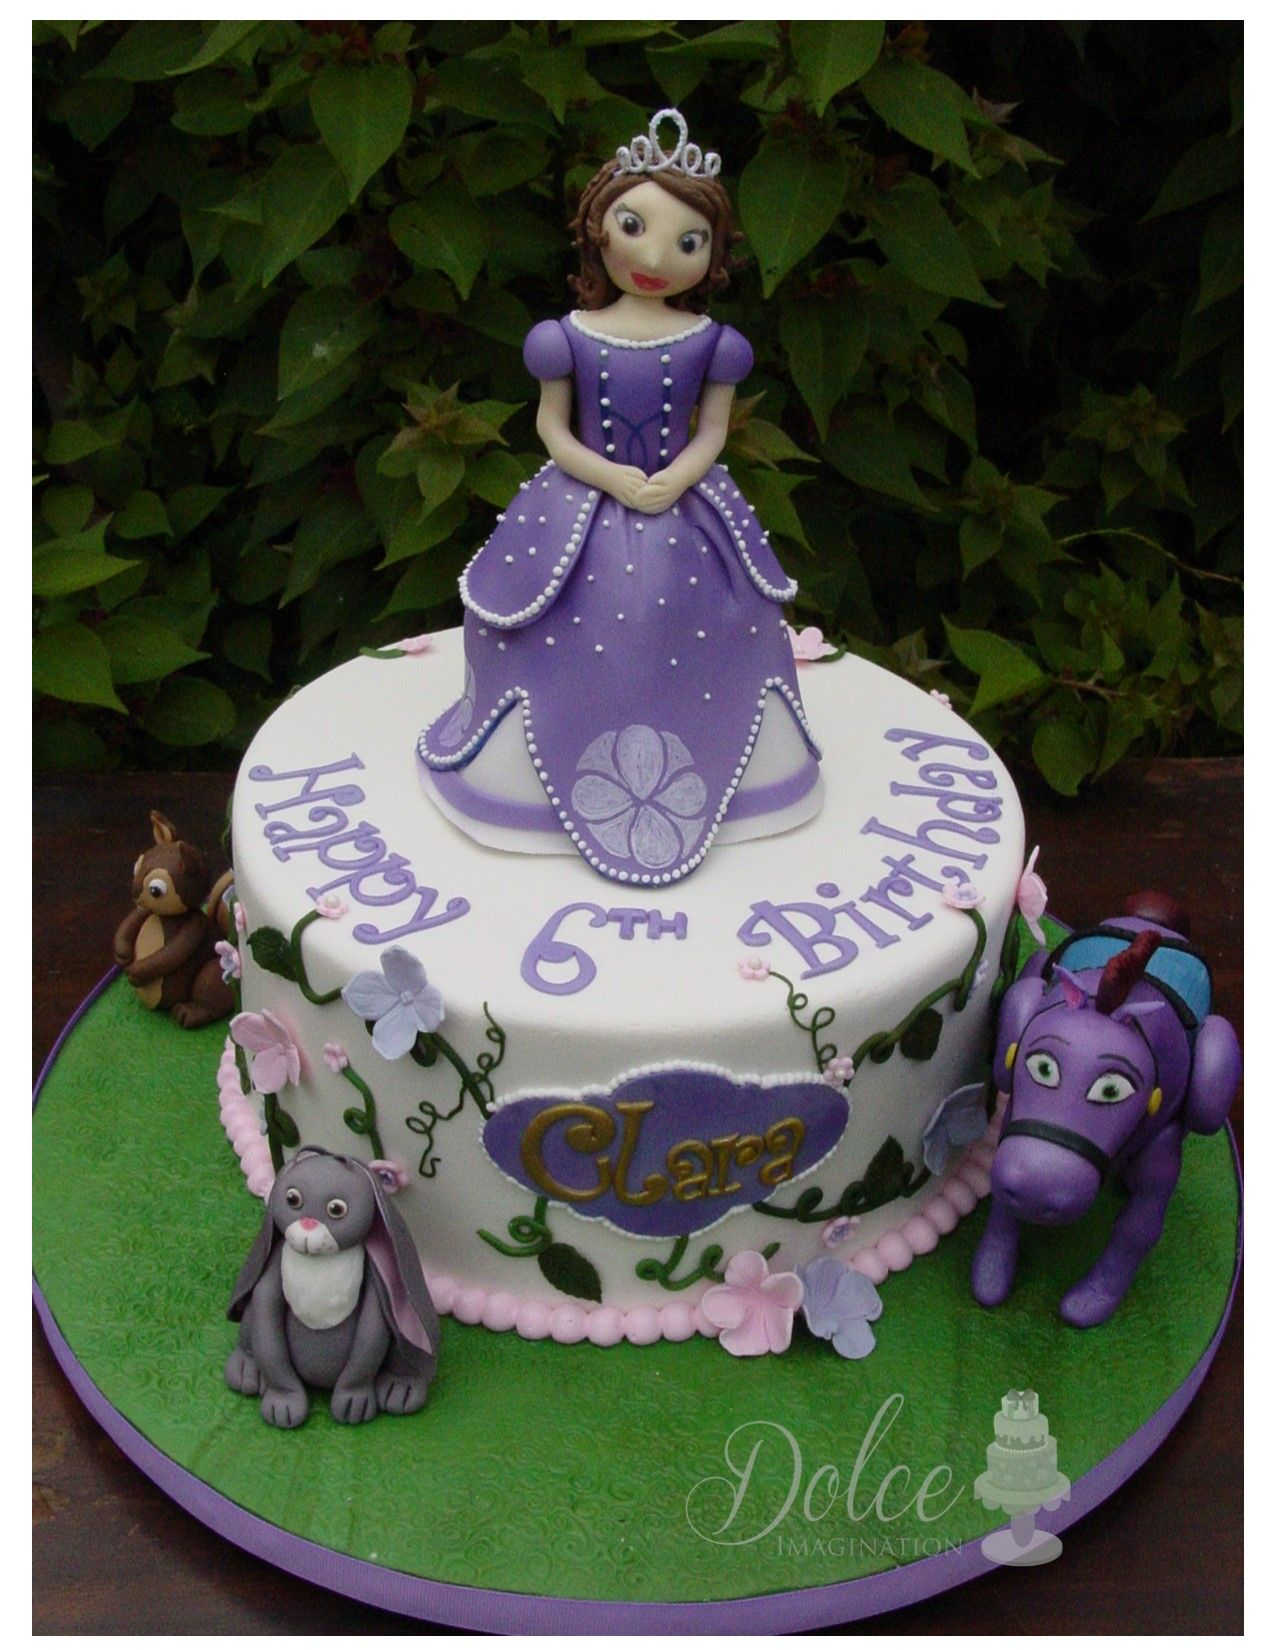 Sofia The First - Made this cake with MMF all figurines are edible